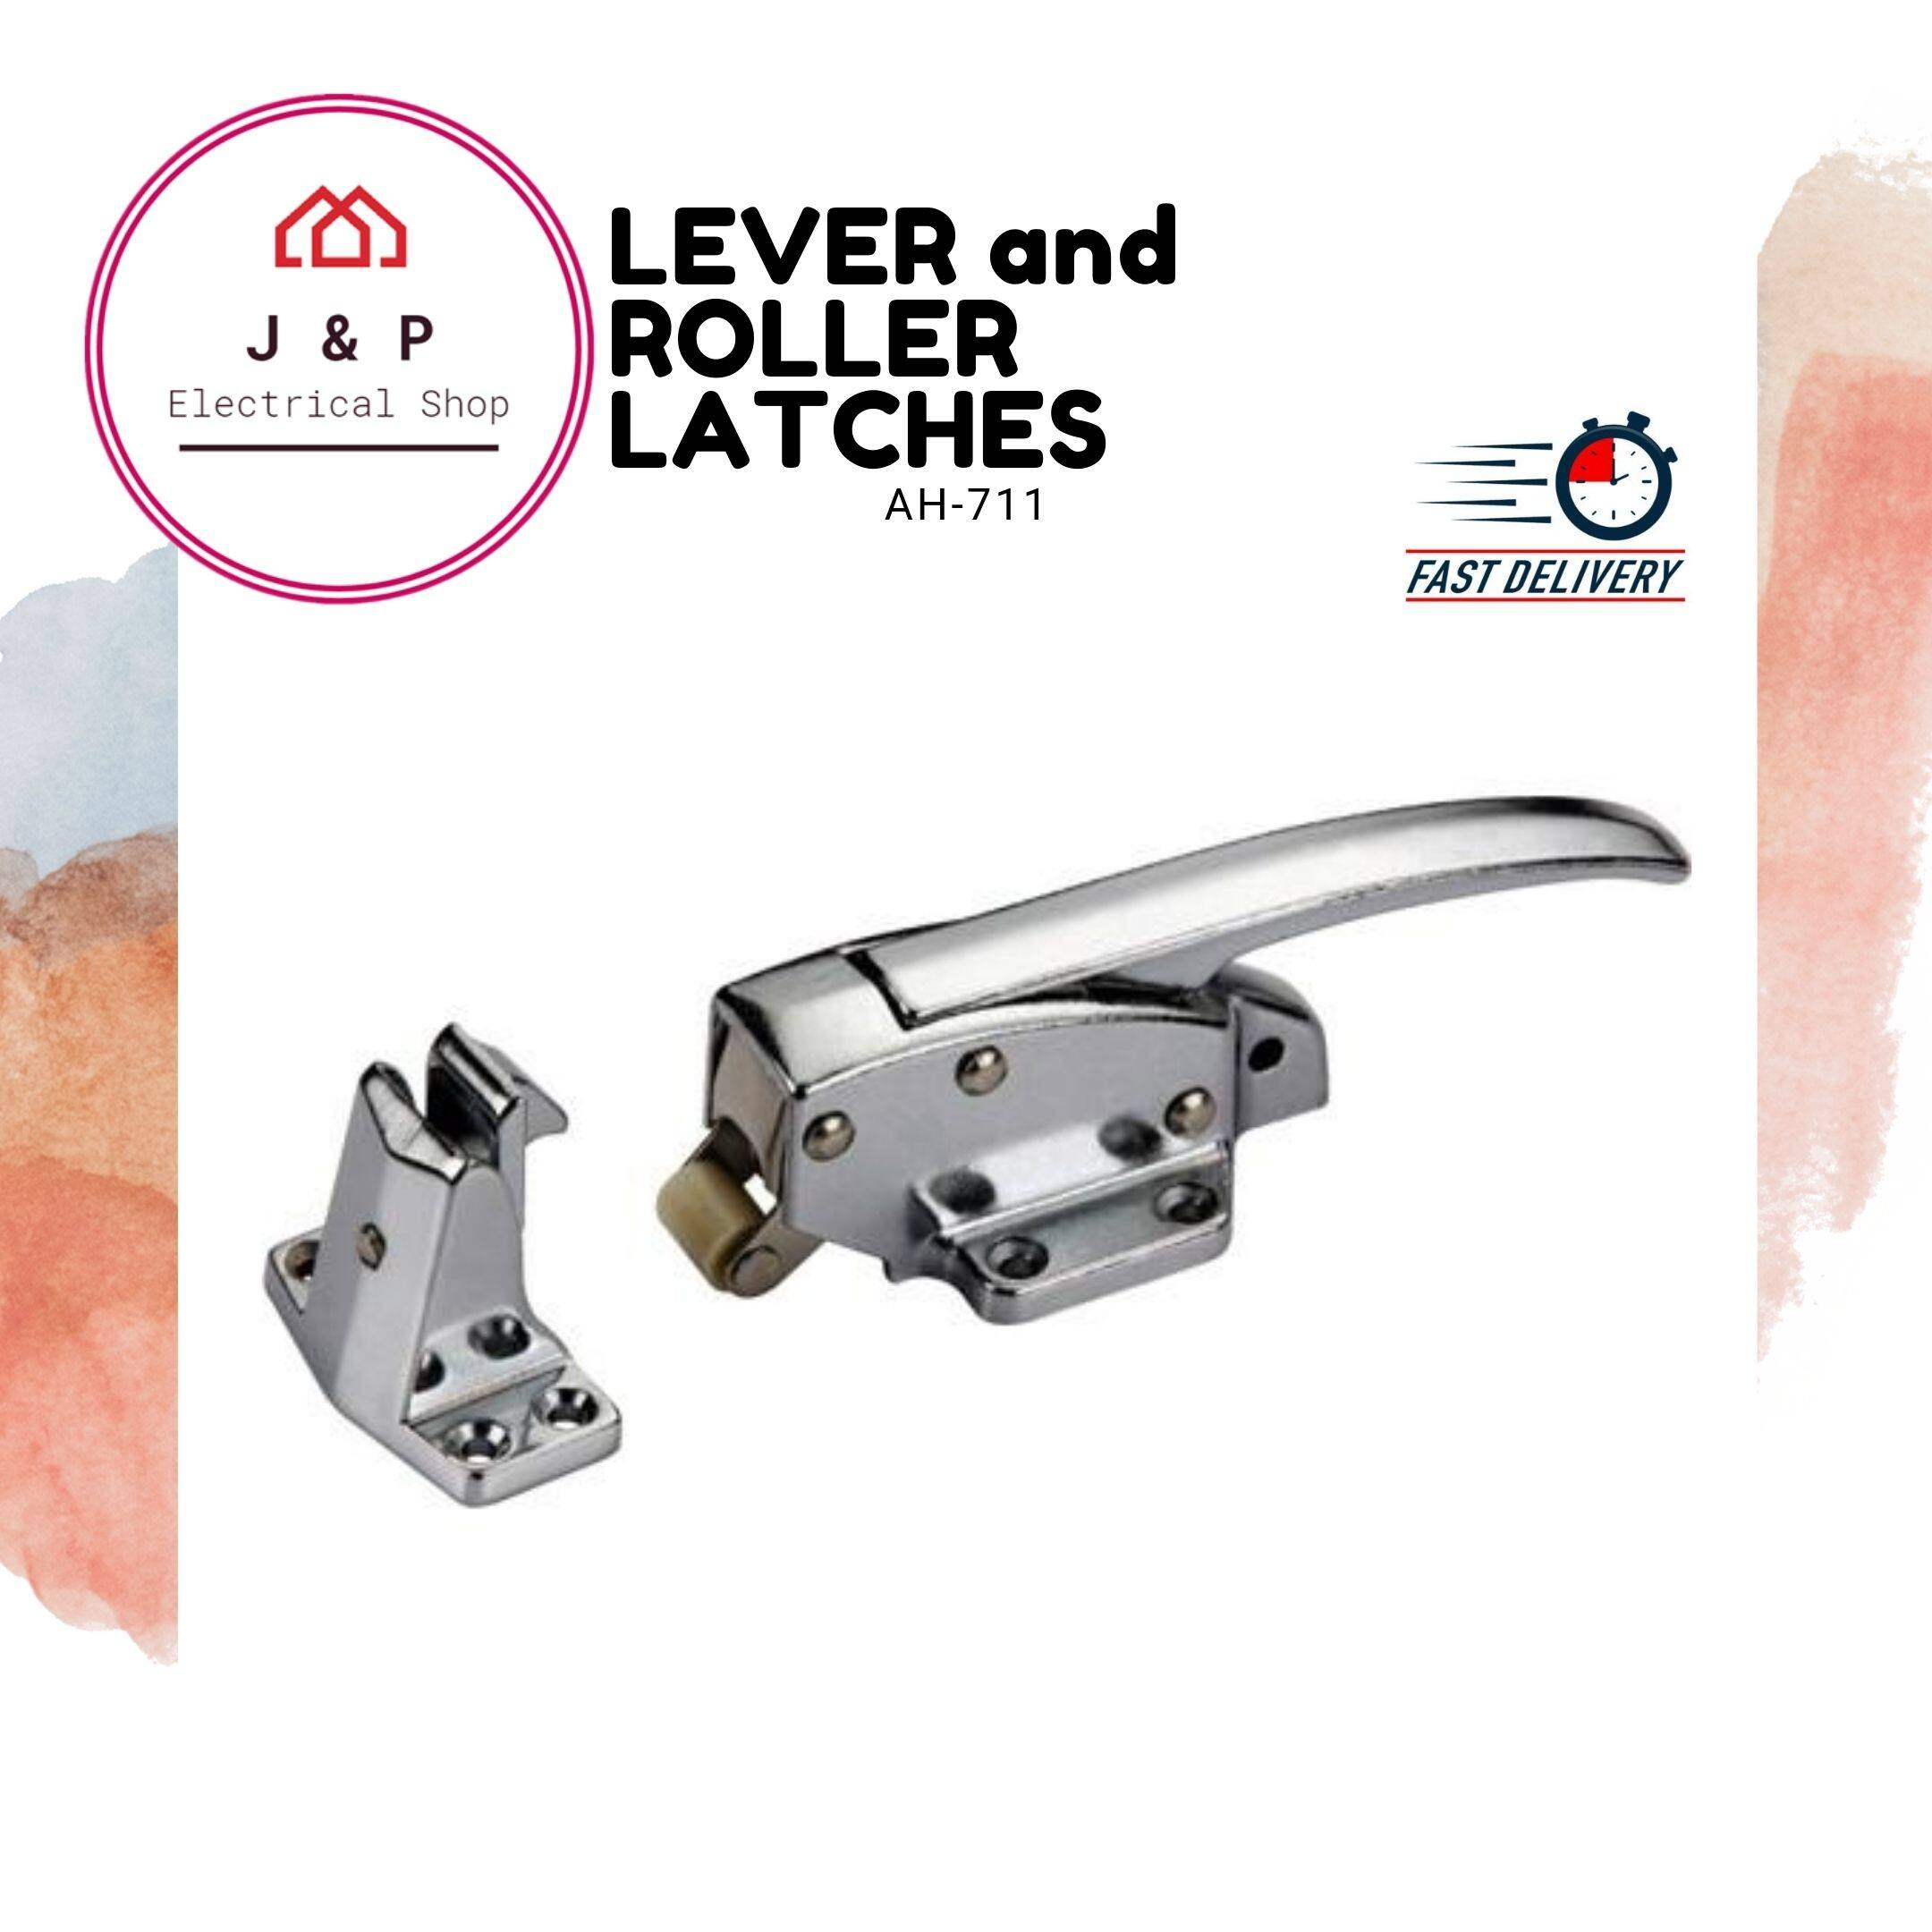 Lever and Roller Latches for Refrigerators 冷冻库门把手 ( AH-711) [READY STOCK 现货]1537346472-1602867271849-0